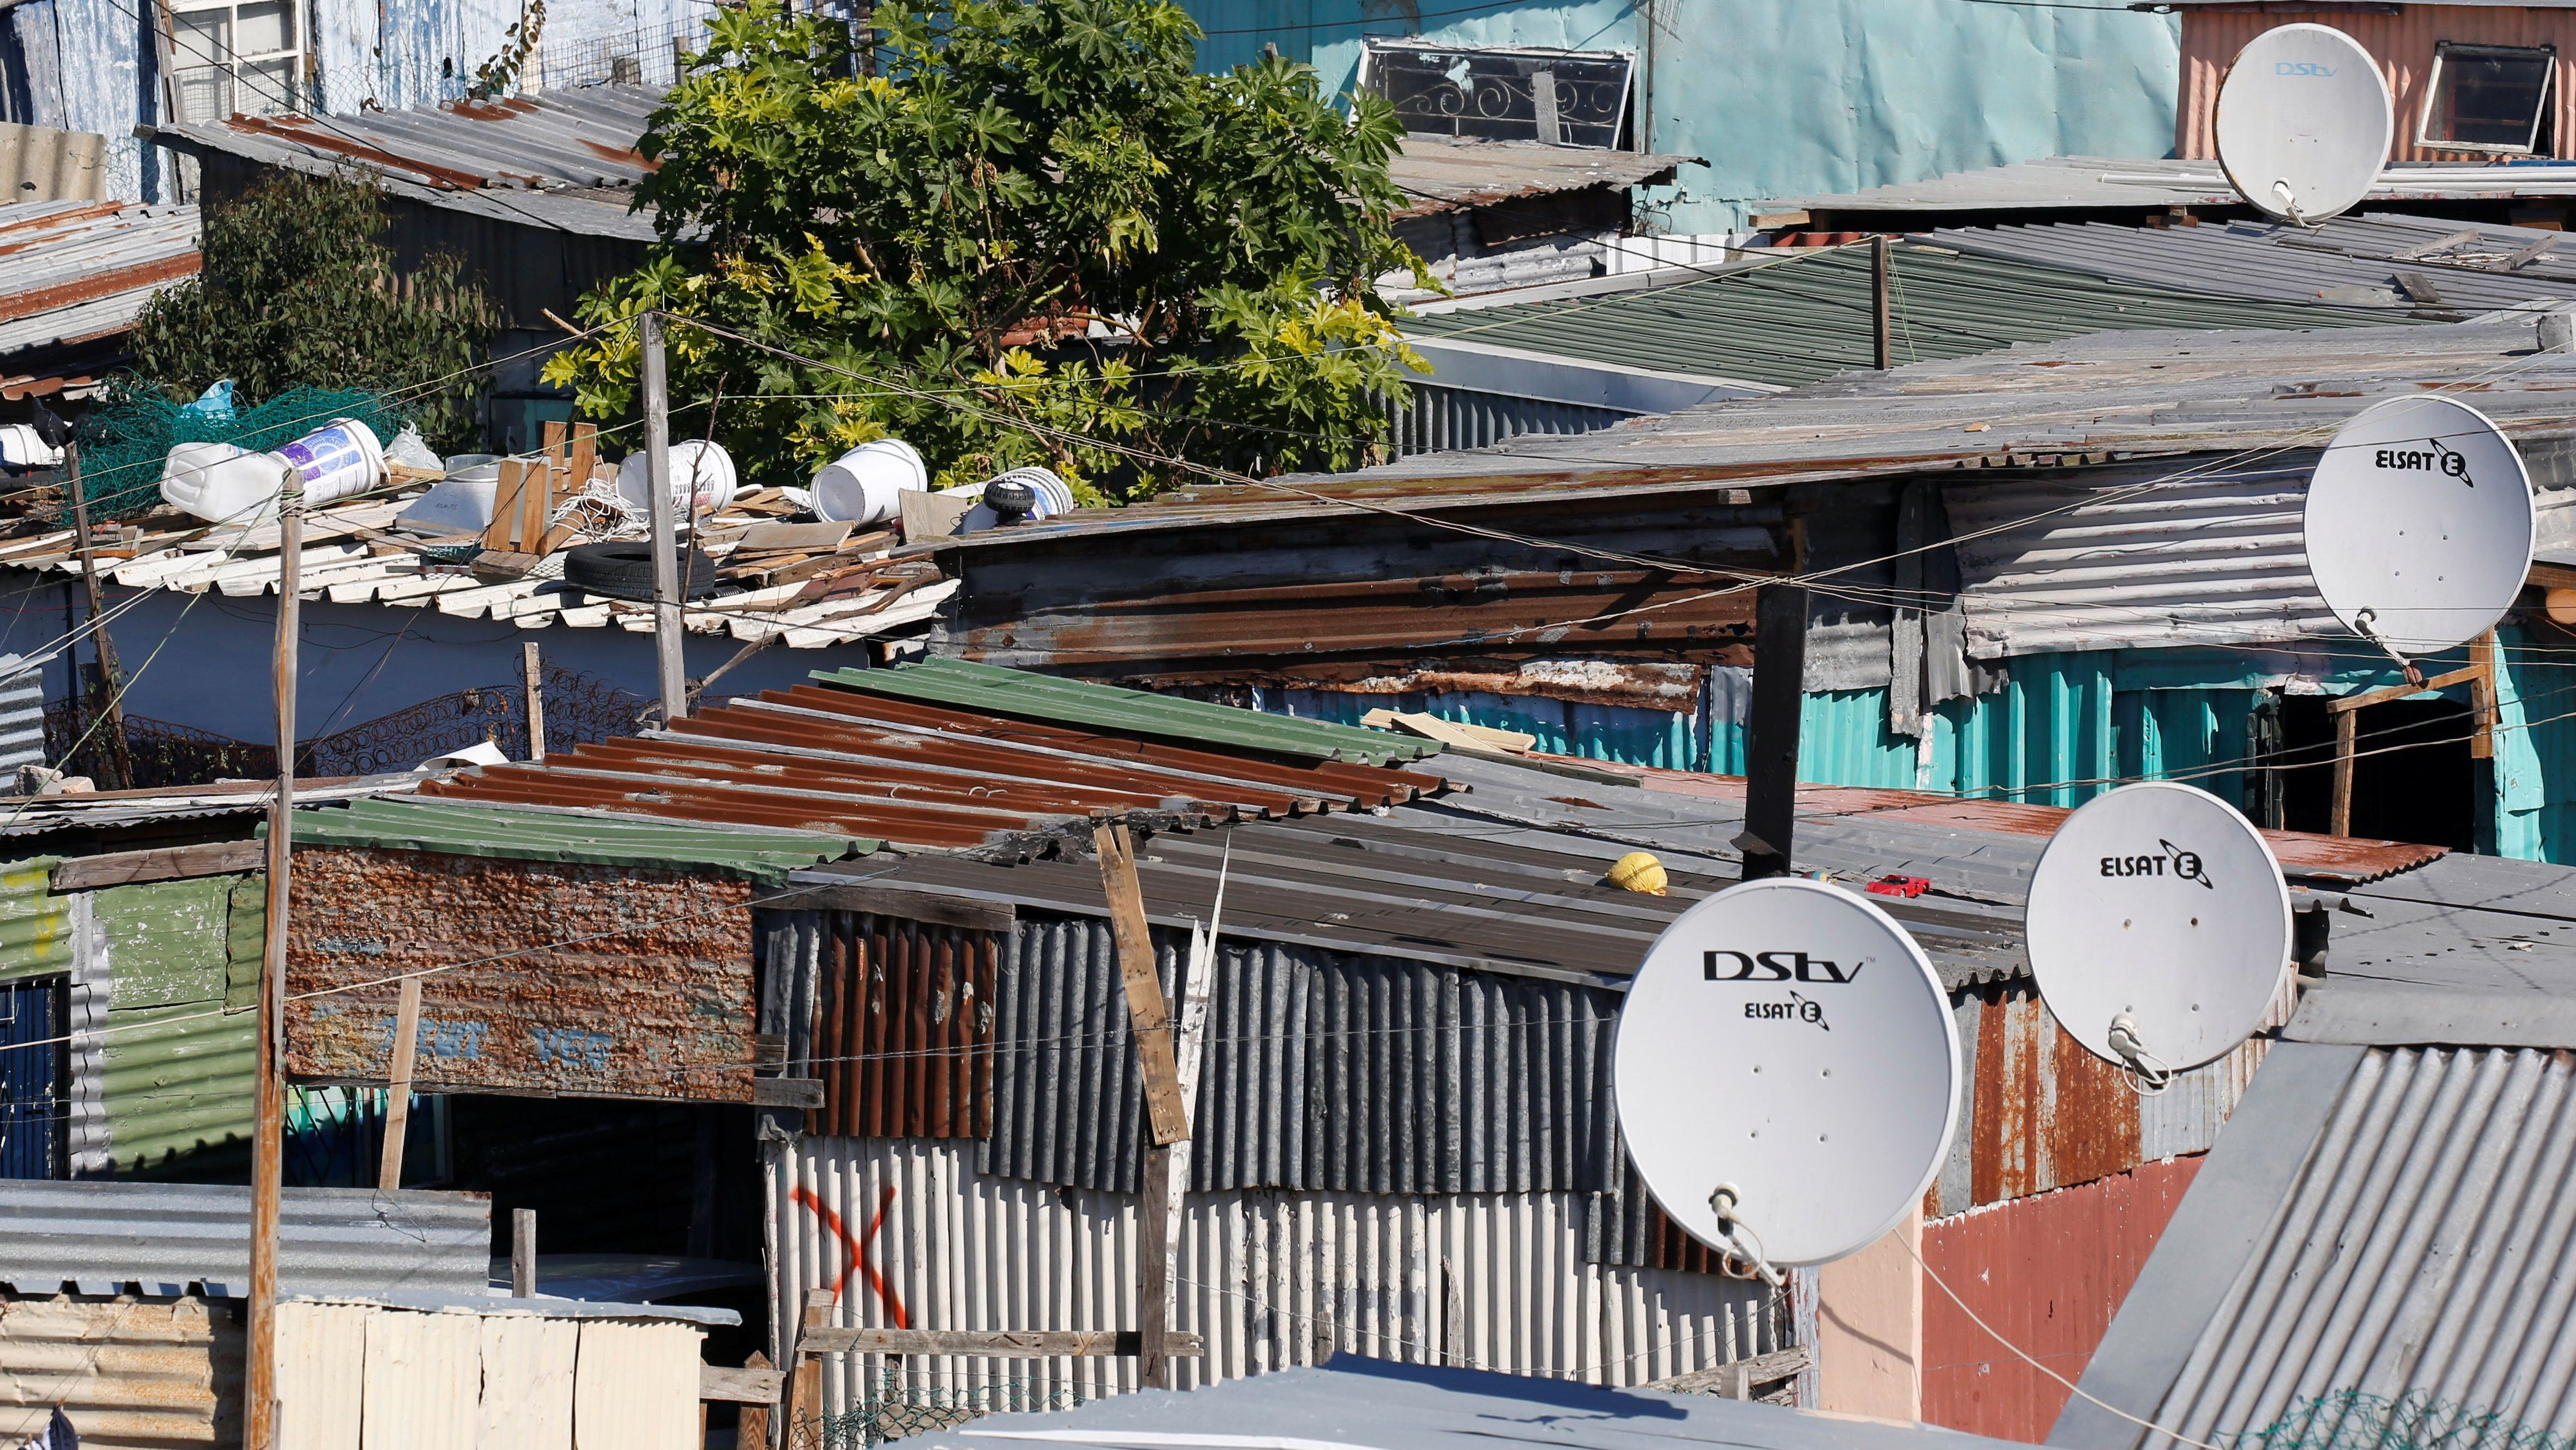 Satellite dishes connect township residents to South Africa's DSTV television network, owned Naspers